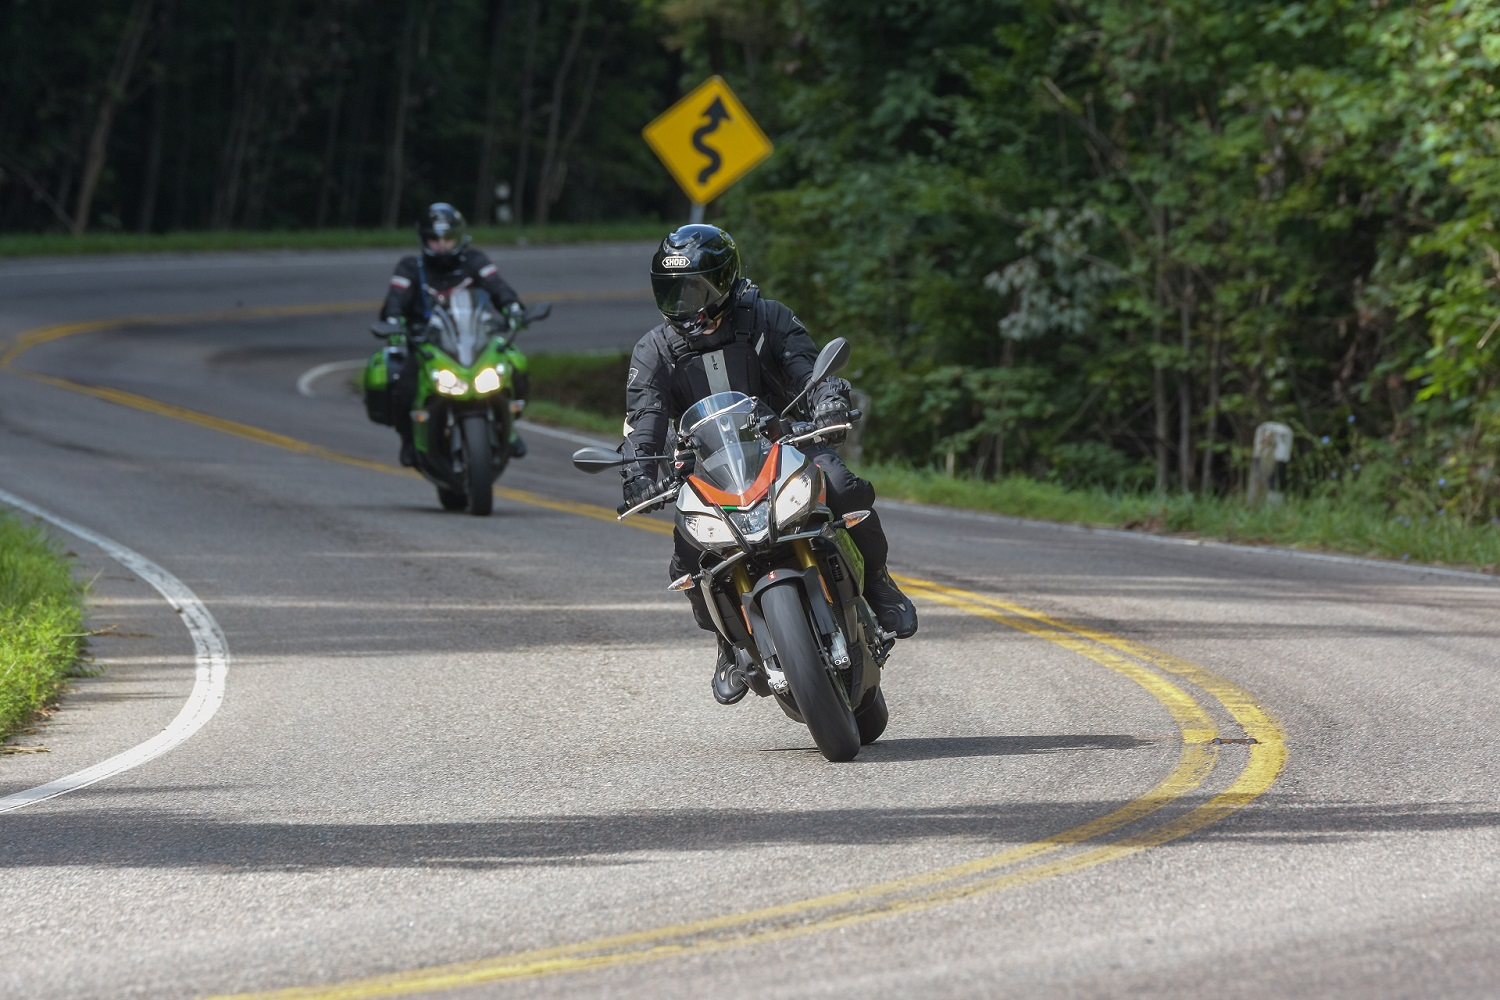 The Snake 2018 tennessee motorcycle ride.jpg